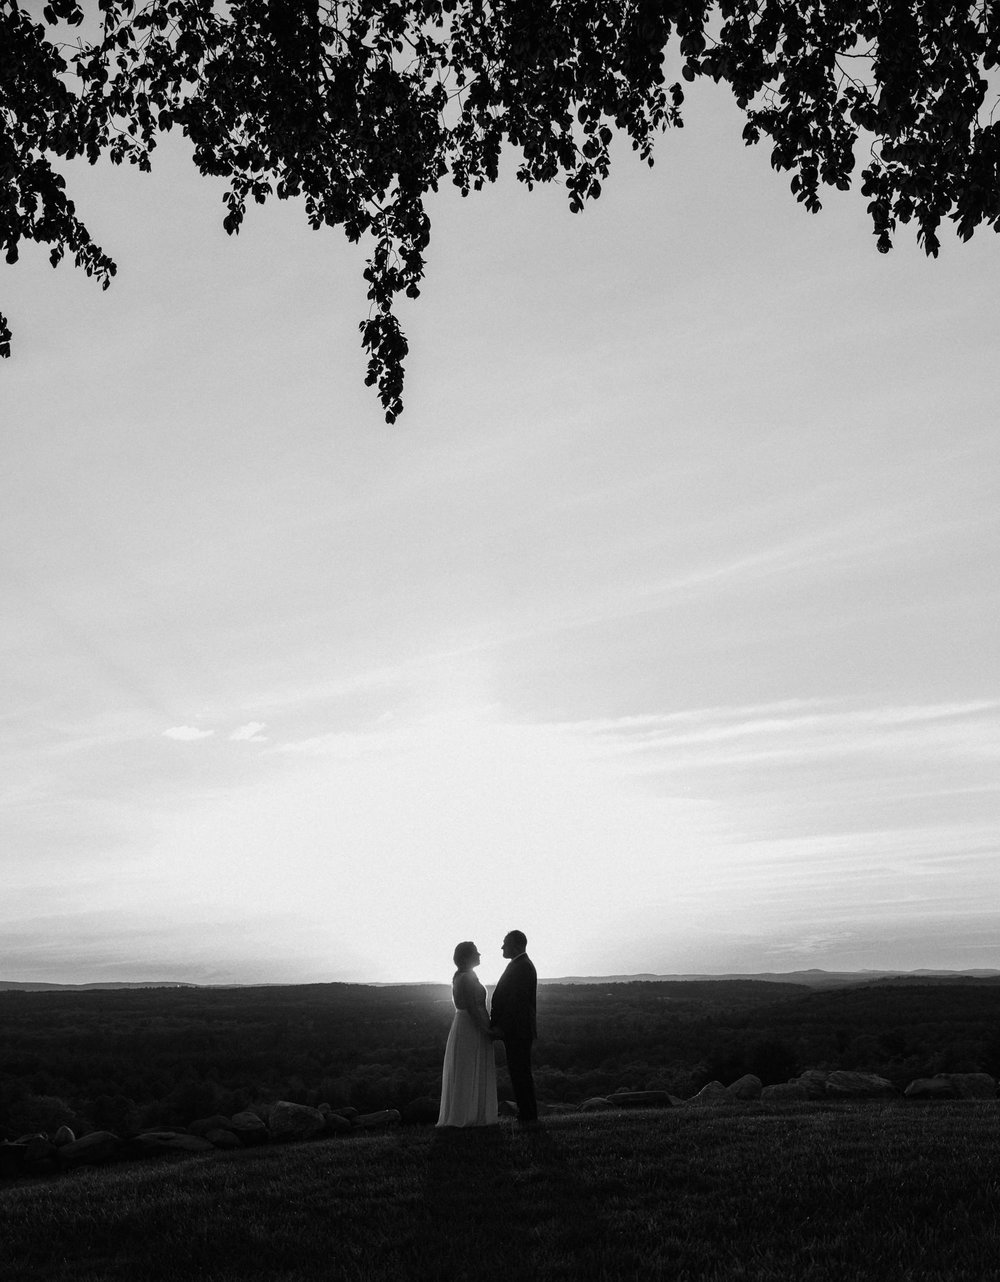 A bride and groom at sunset